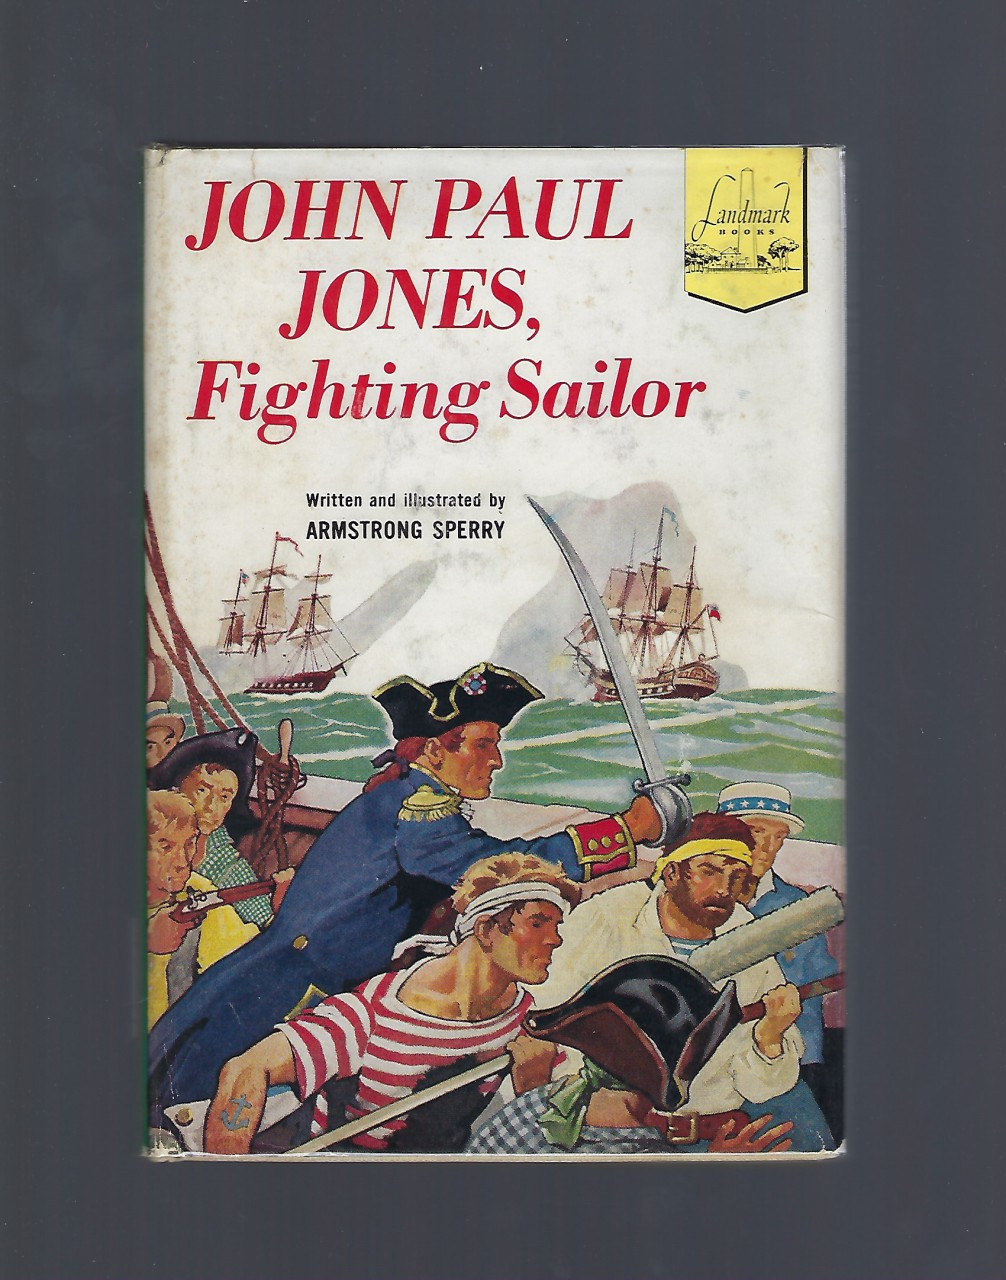 John Paul Jones Fighting Sailor #39 Landmark HB/DJ, Armstrong Sperry